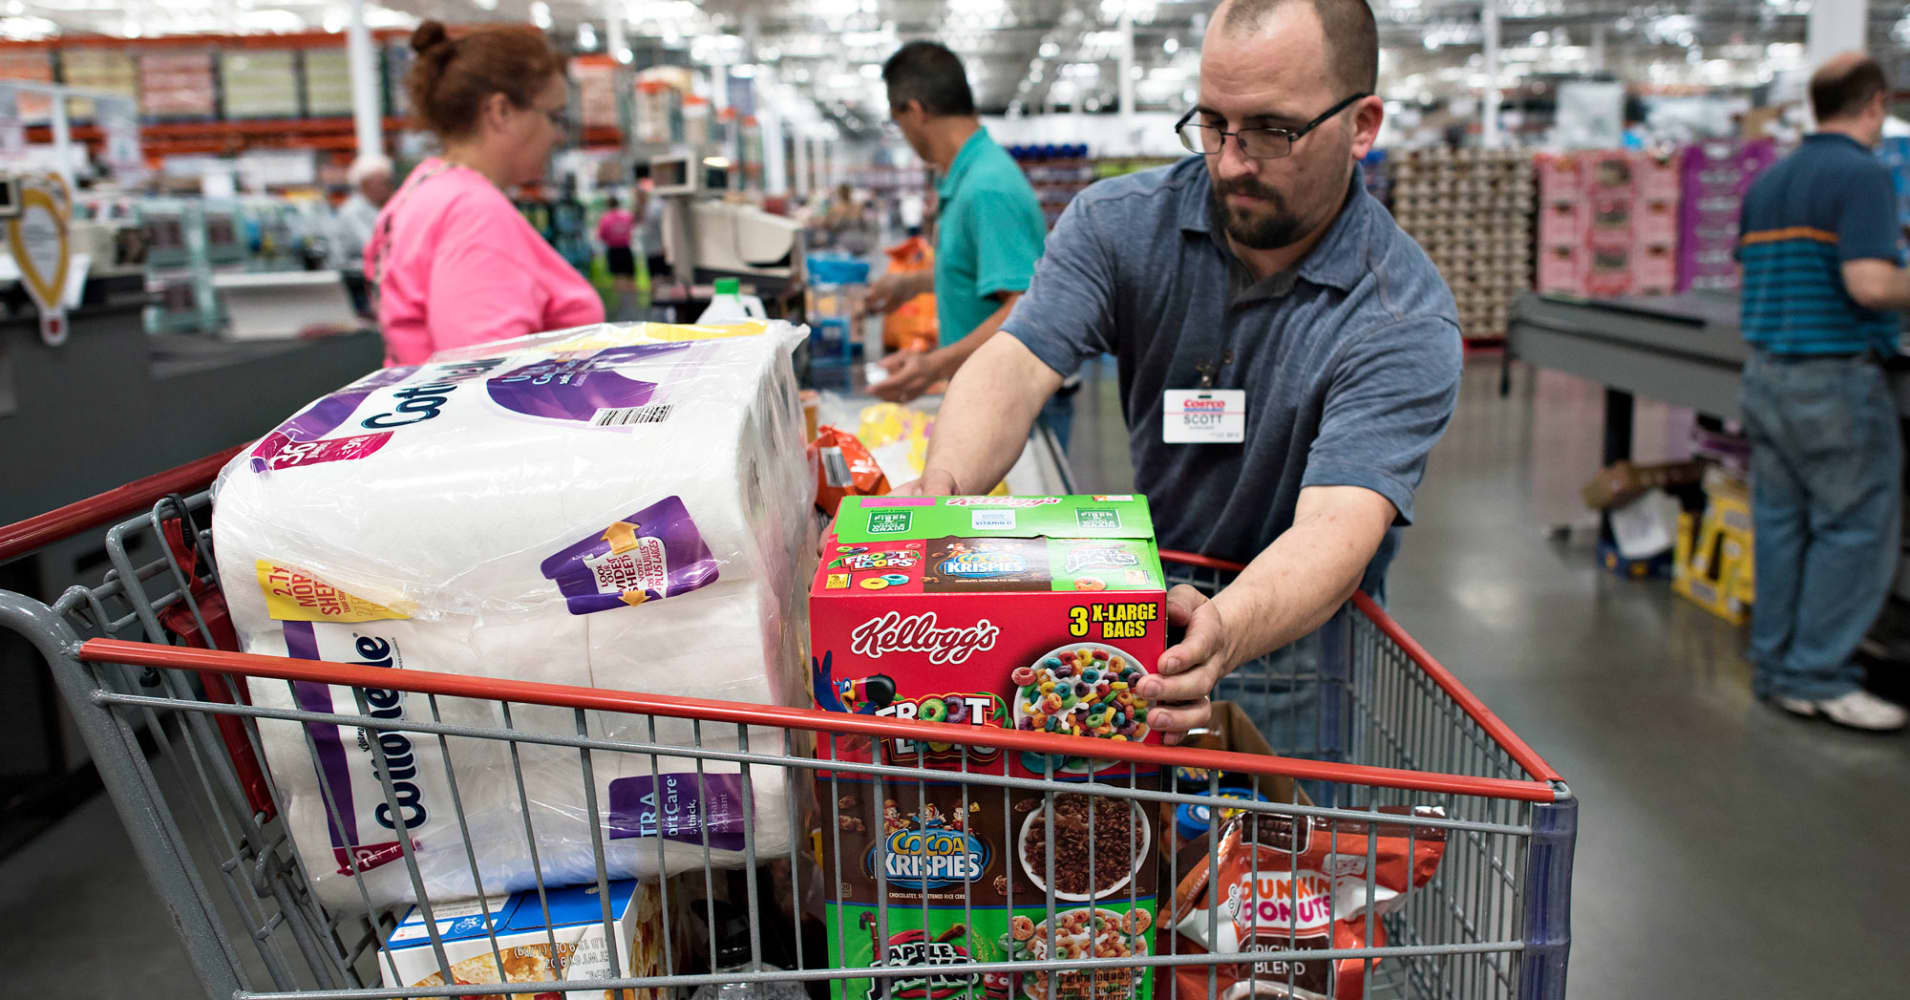 Costco vs Boxed: Which one will save you more money